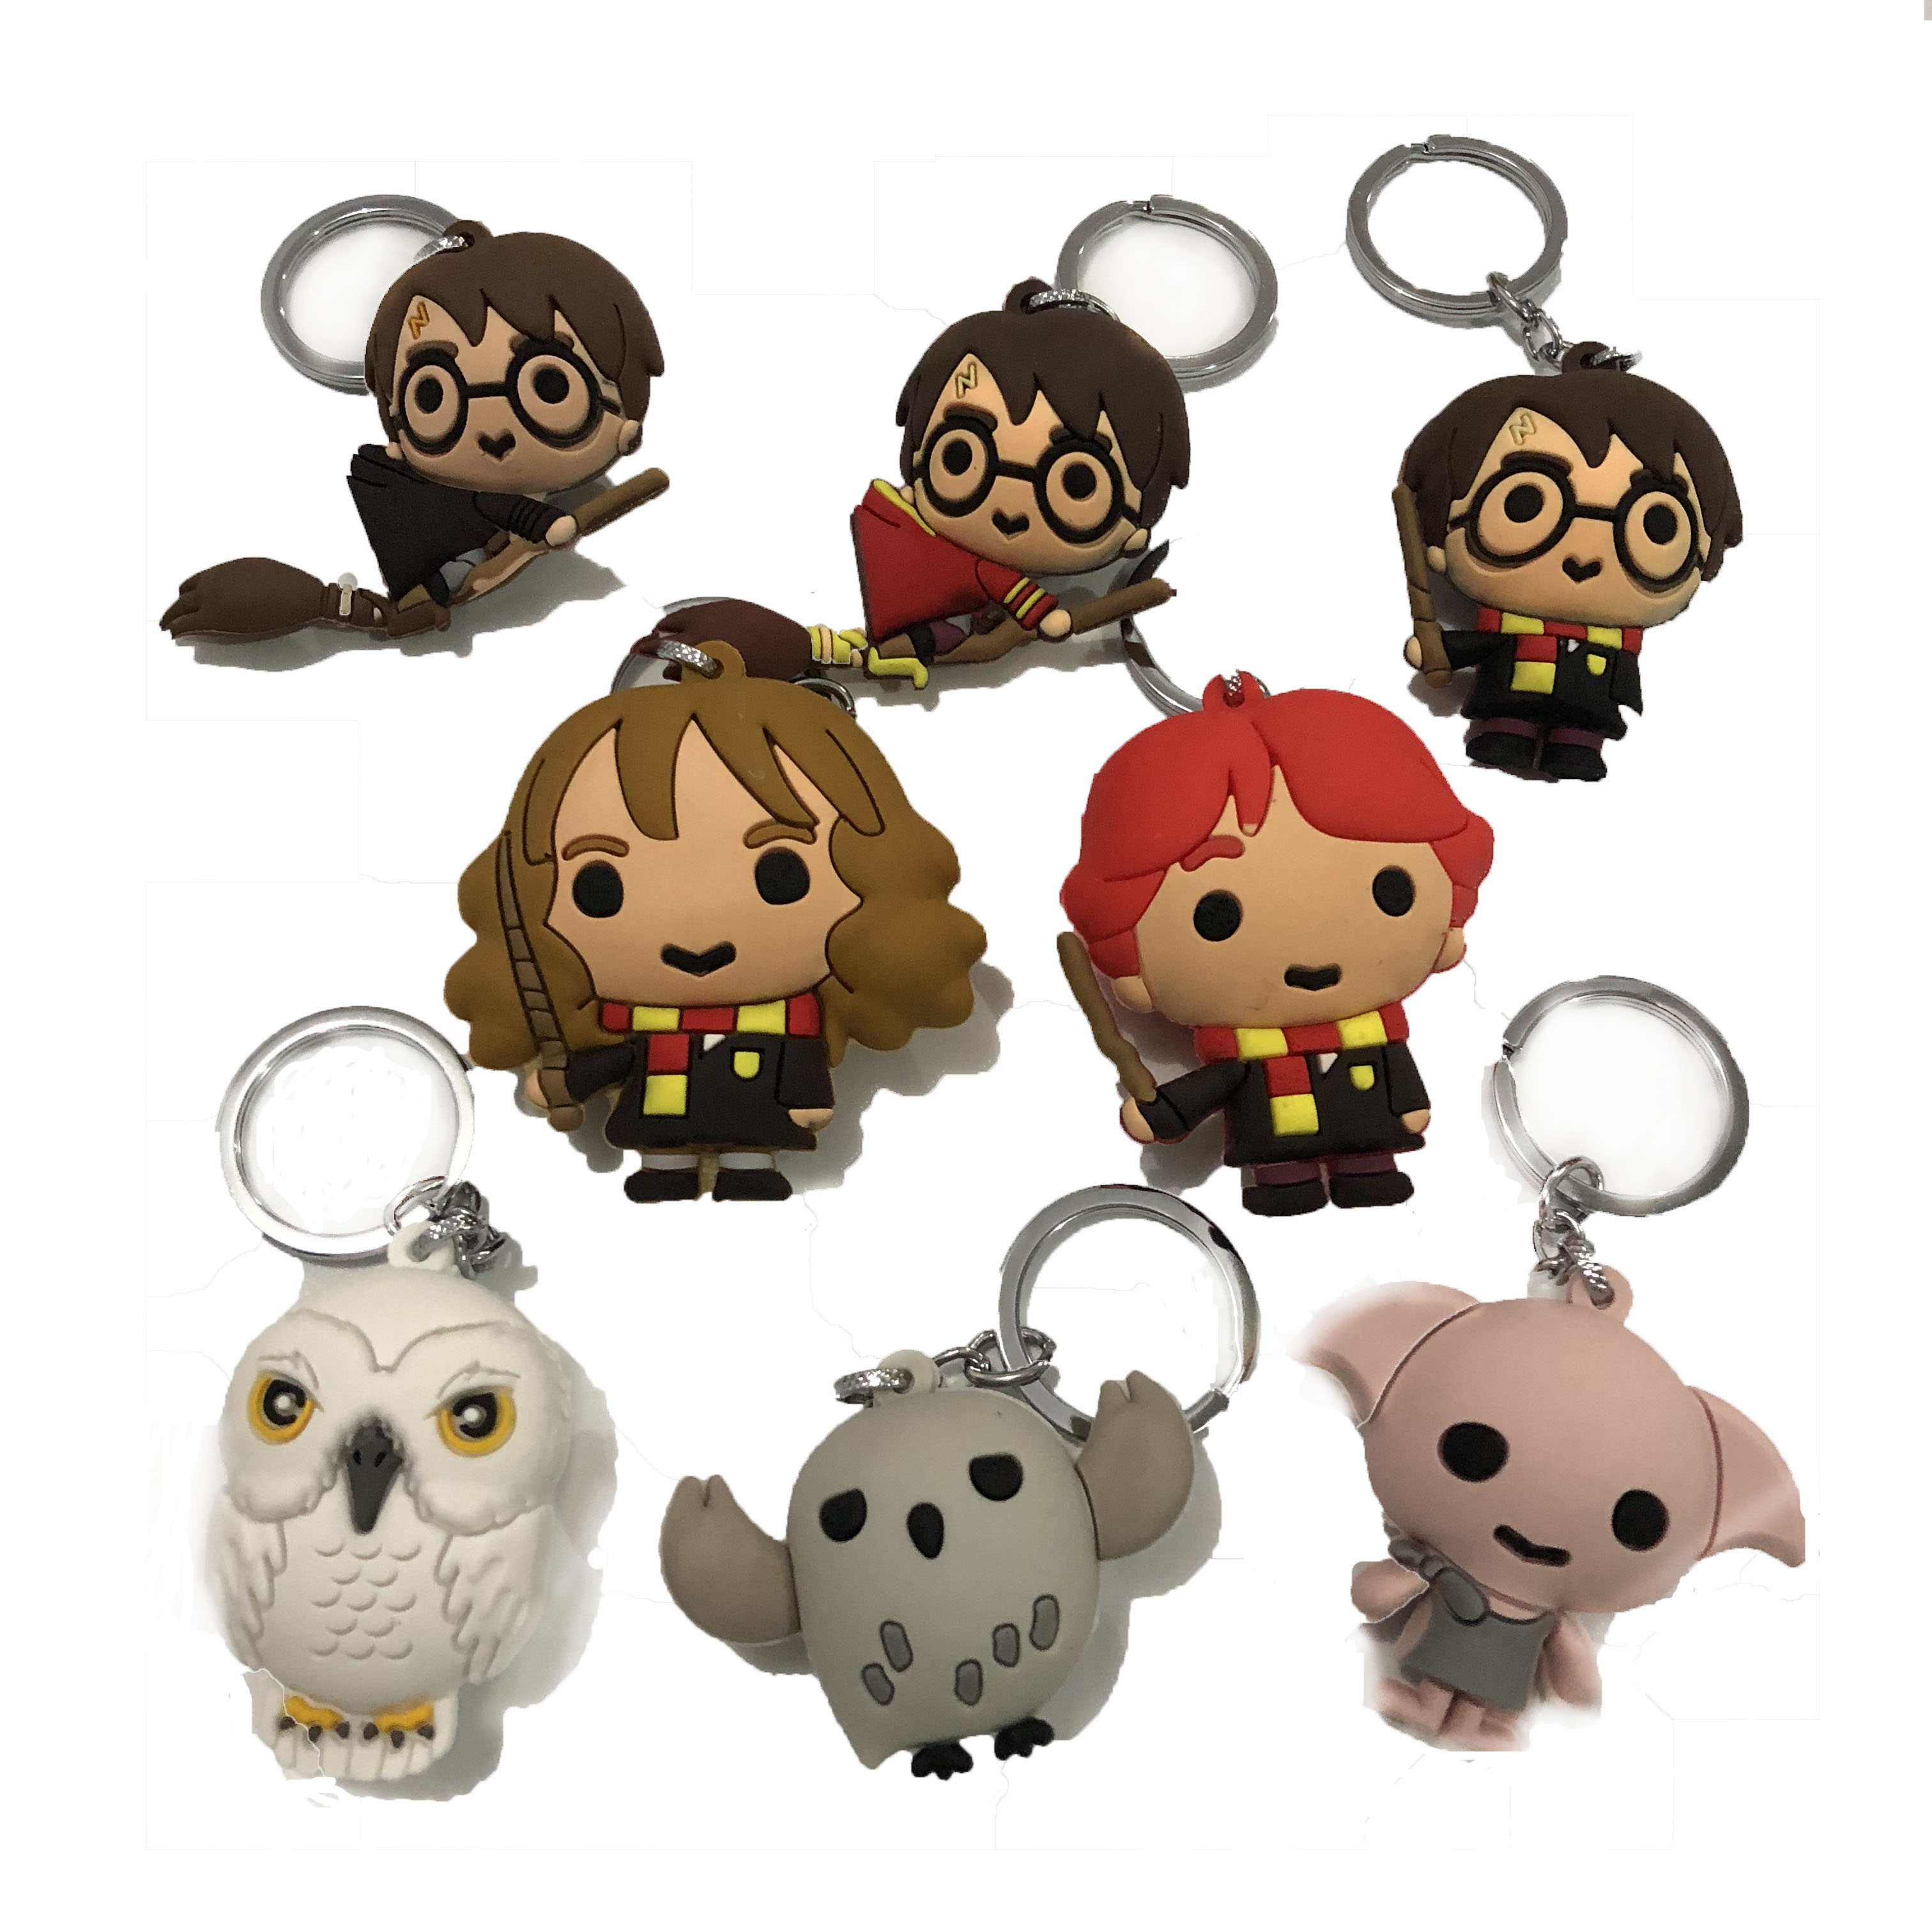 Active Pvc 3d Harri Potter Dobby Hermione Granger Owl Ron Lord Voldemort Red Potter Keychain Action Figures Doll Toys For Children Latest Fashion Action & Toy Figures